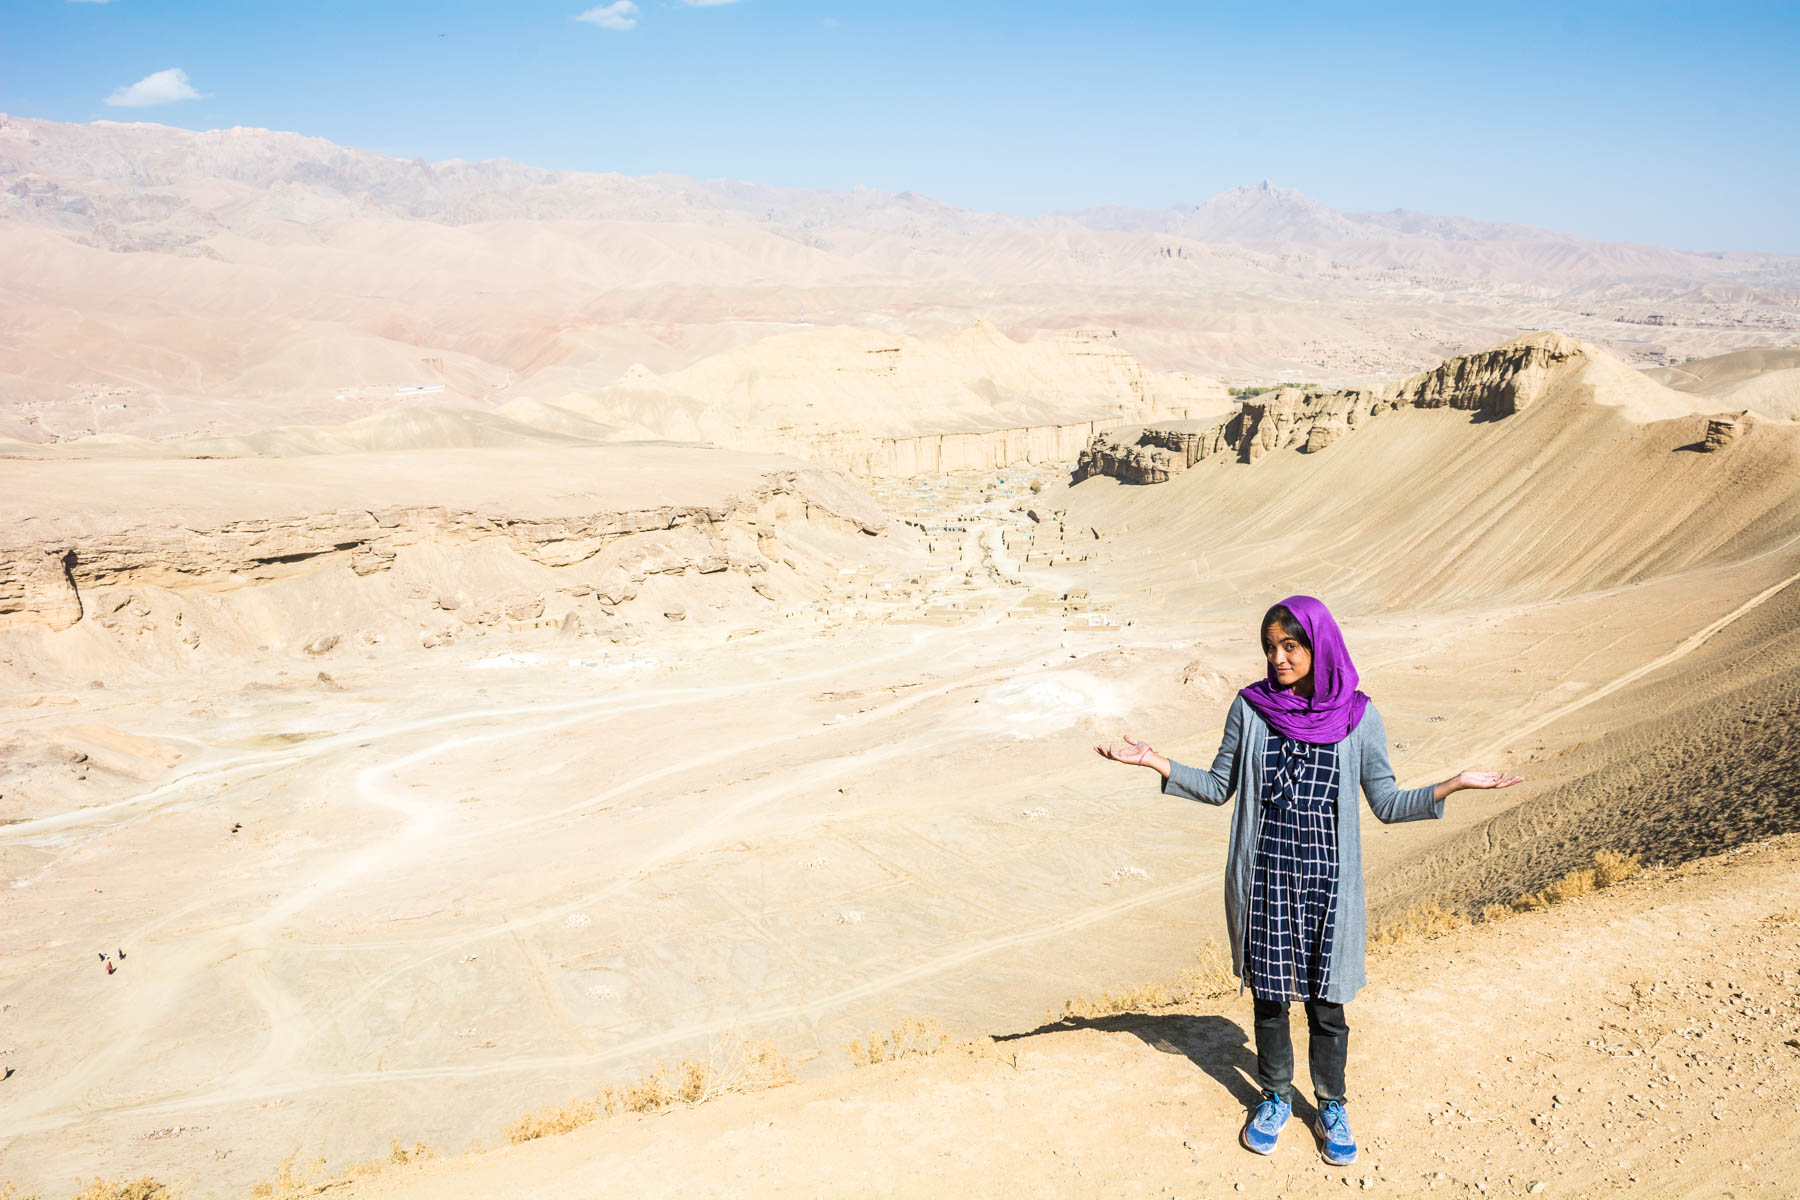 This is what it's like to travel as a woman in Afghanistan - Lost With Purpose